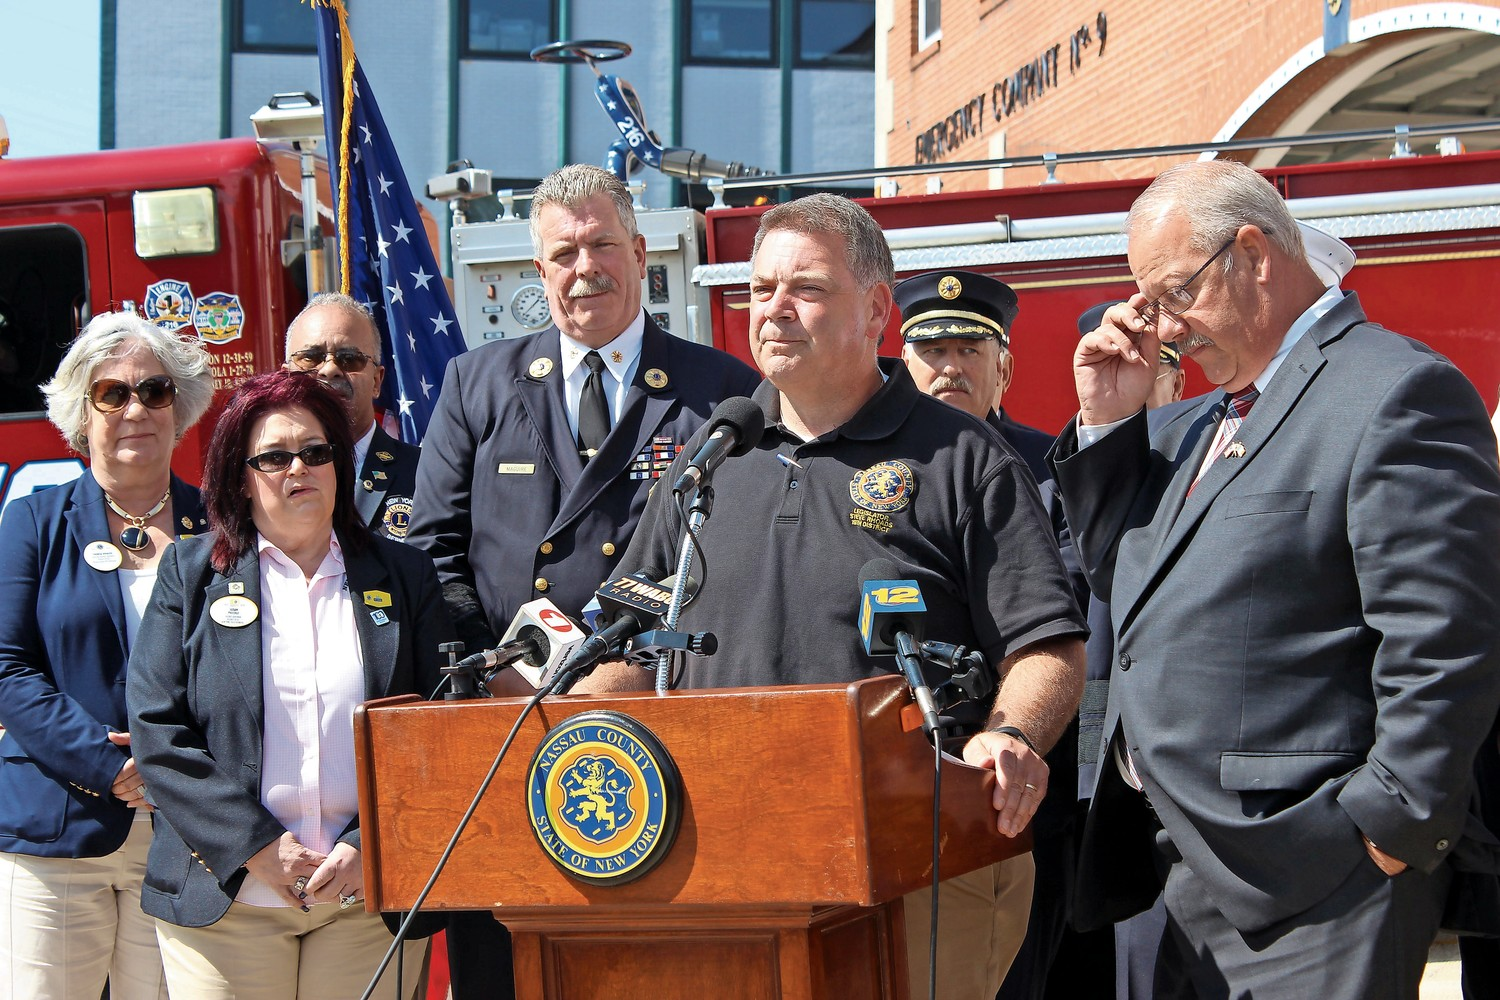 At a news conference at the Freeport Fire Department Headquarters on Aug. 30, Nassau County Legislator Steve Rhoads kicked off a supply drive to aid the victims of Hurricane Harvey.